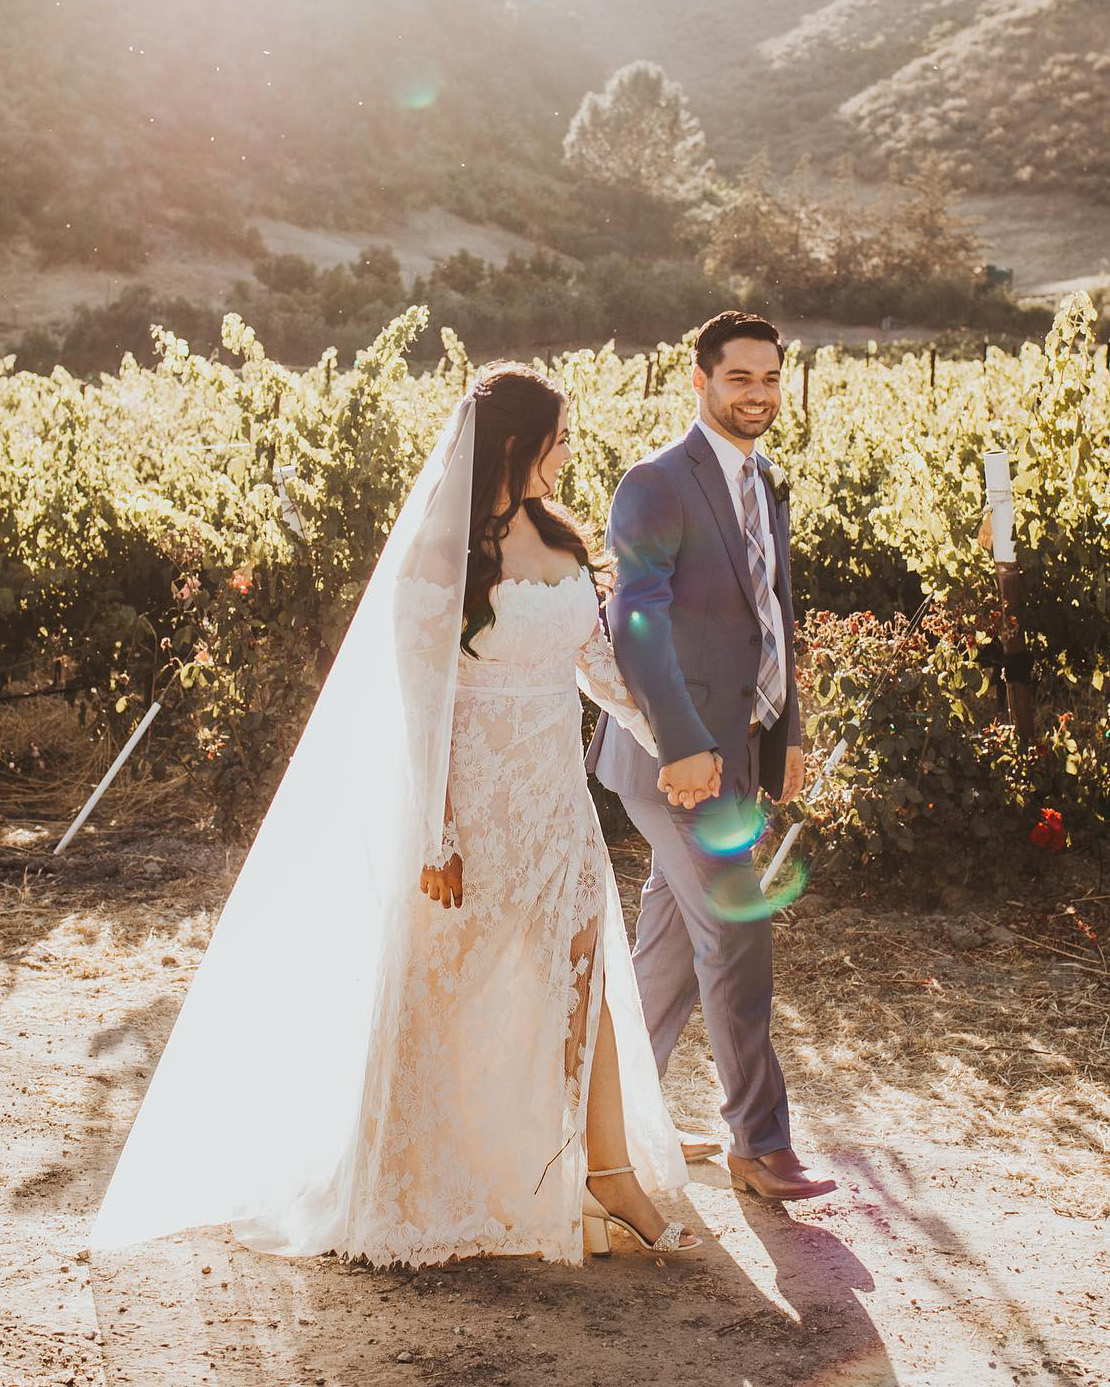 bride in a floral lace wedding dress walking with groom